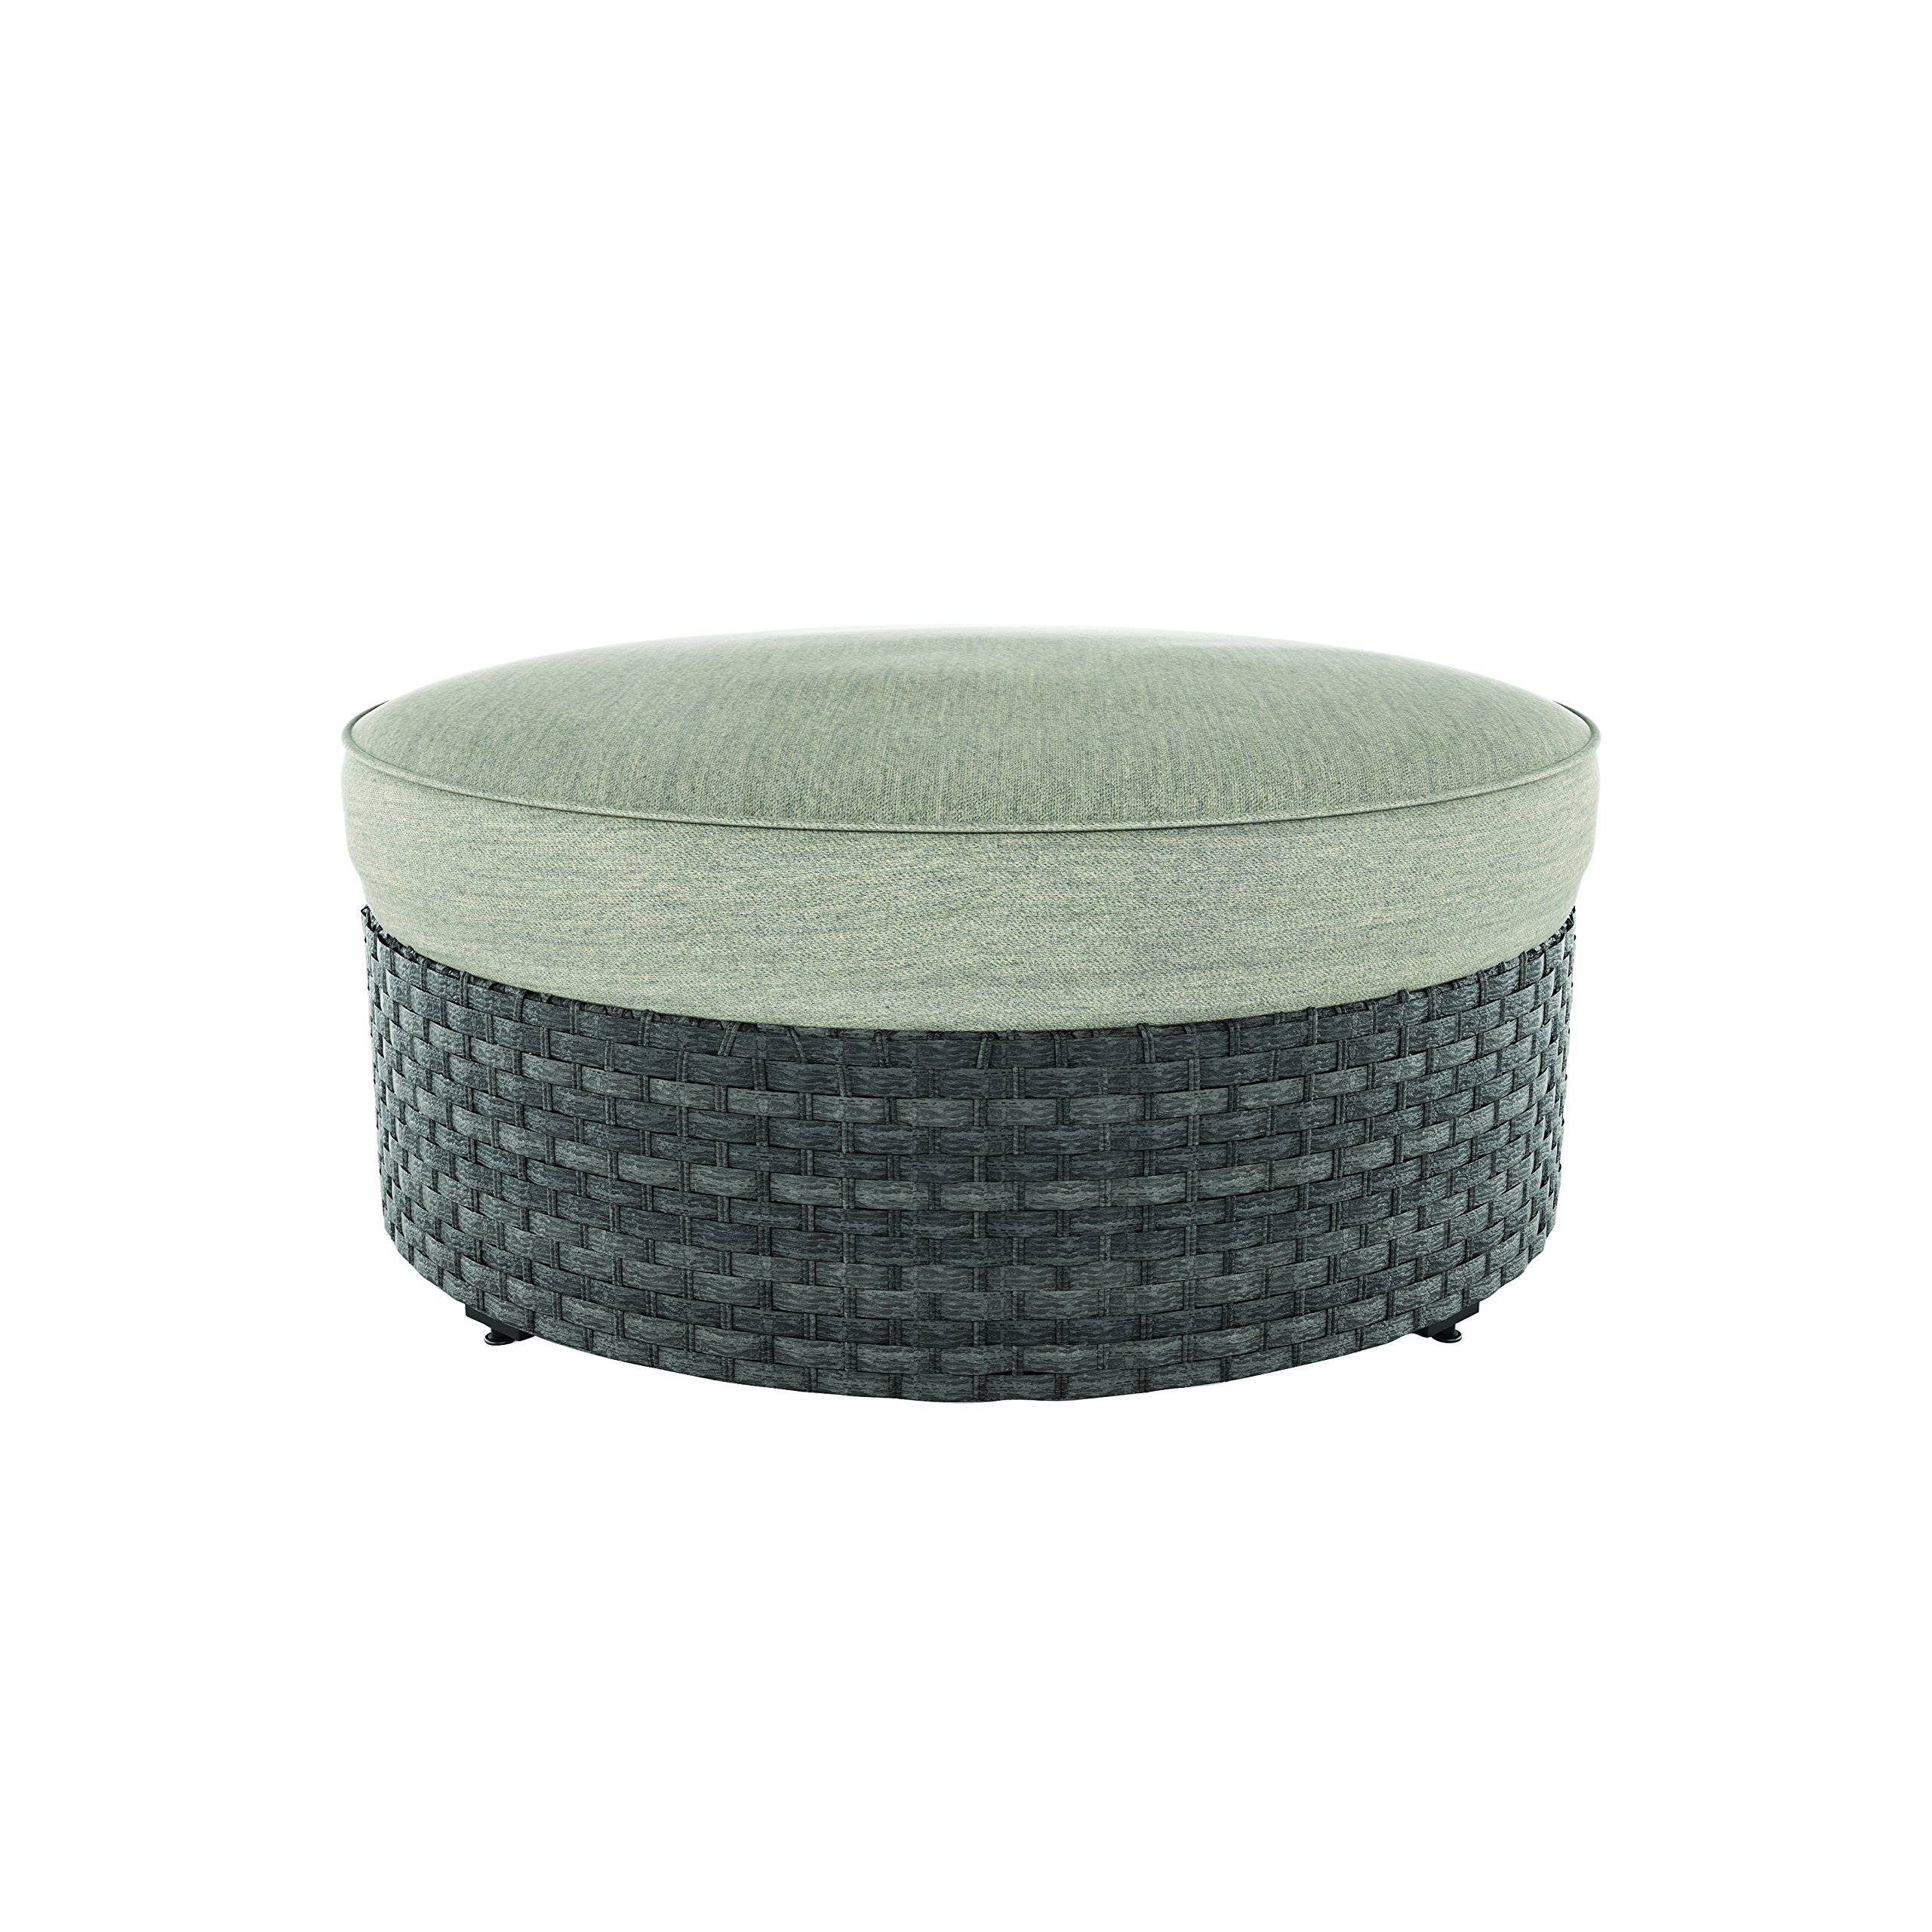 Ashley Furniture Signature Design - Spring Dew Outdoor Ottoman with Cushion - Gray